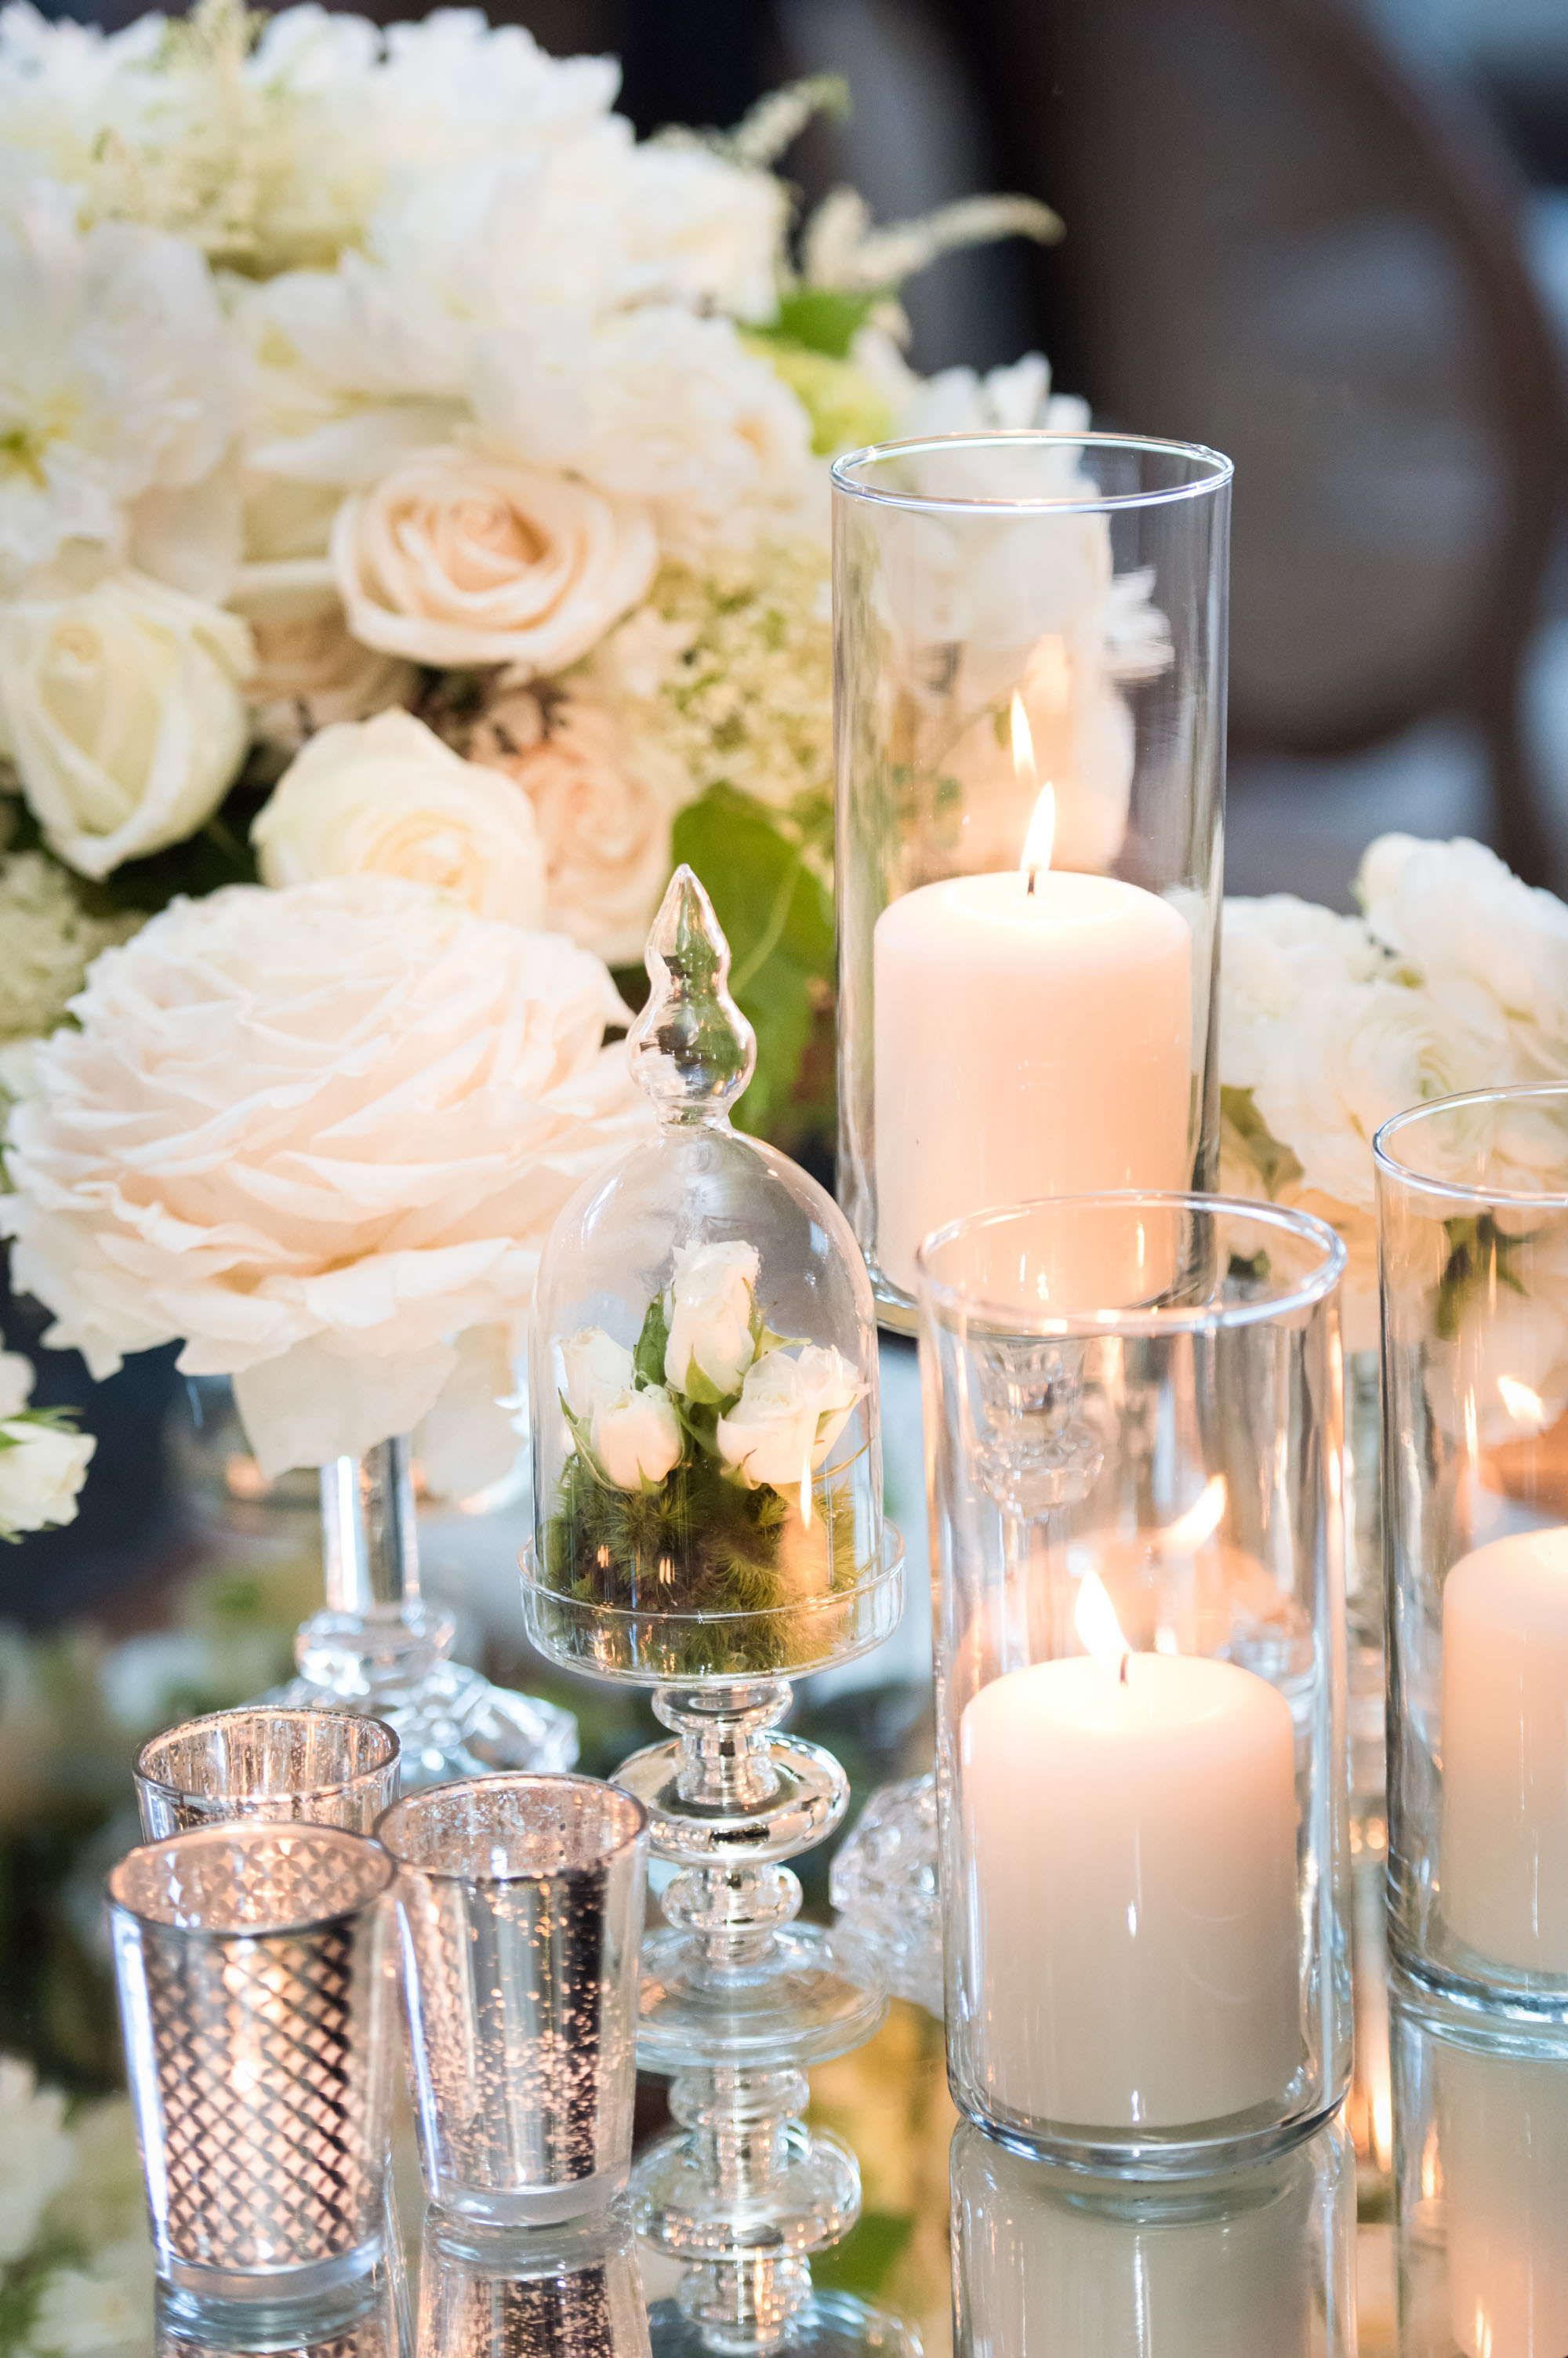 Small candle votives on wedding table reception ideas